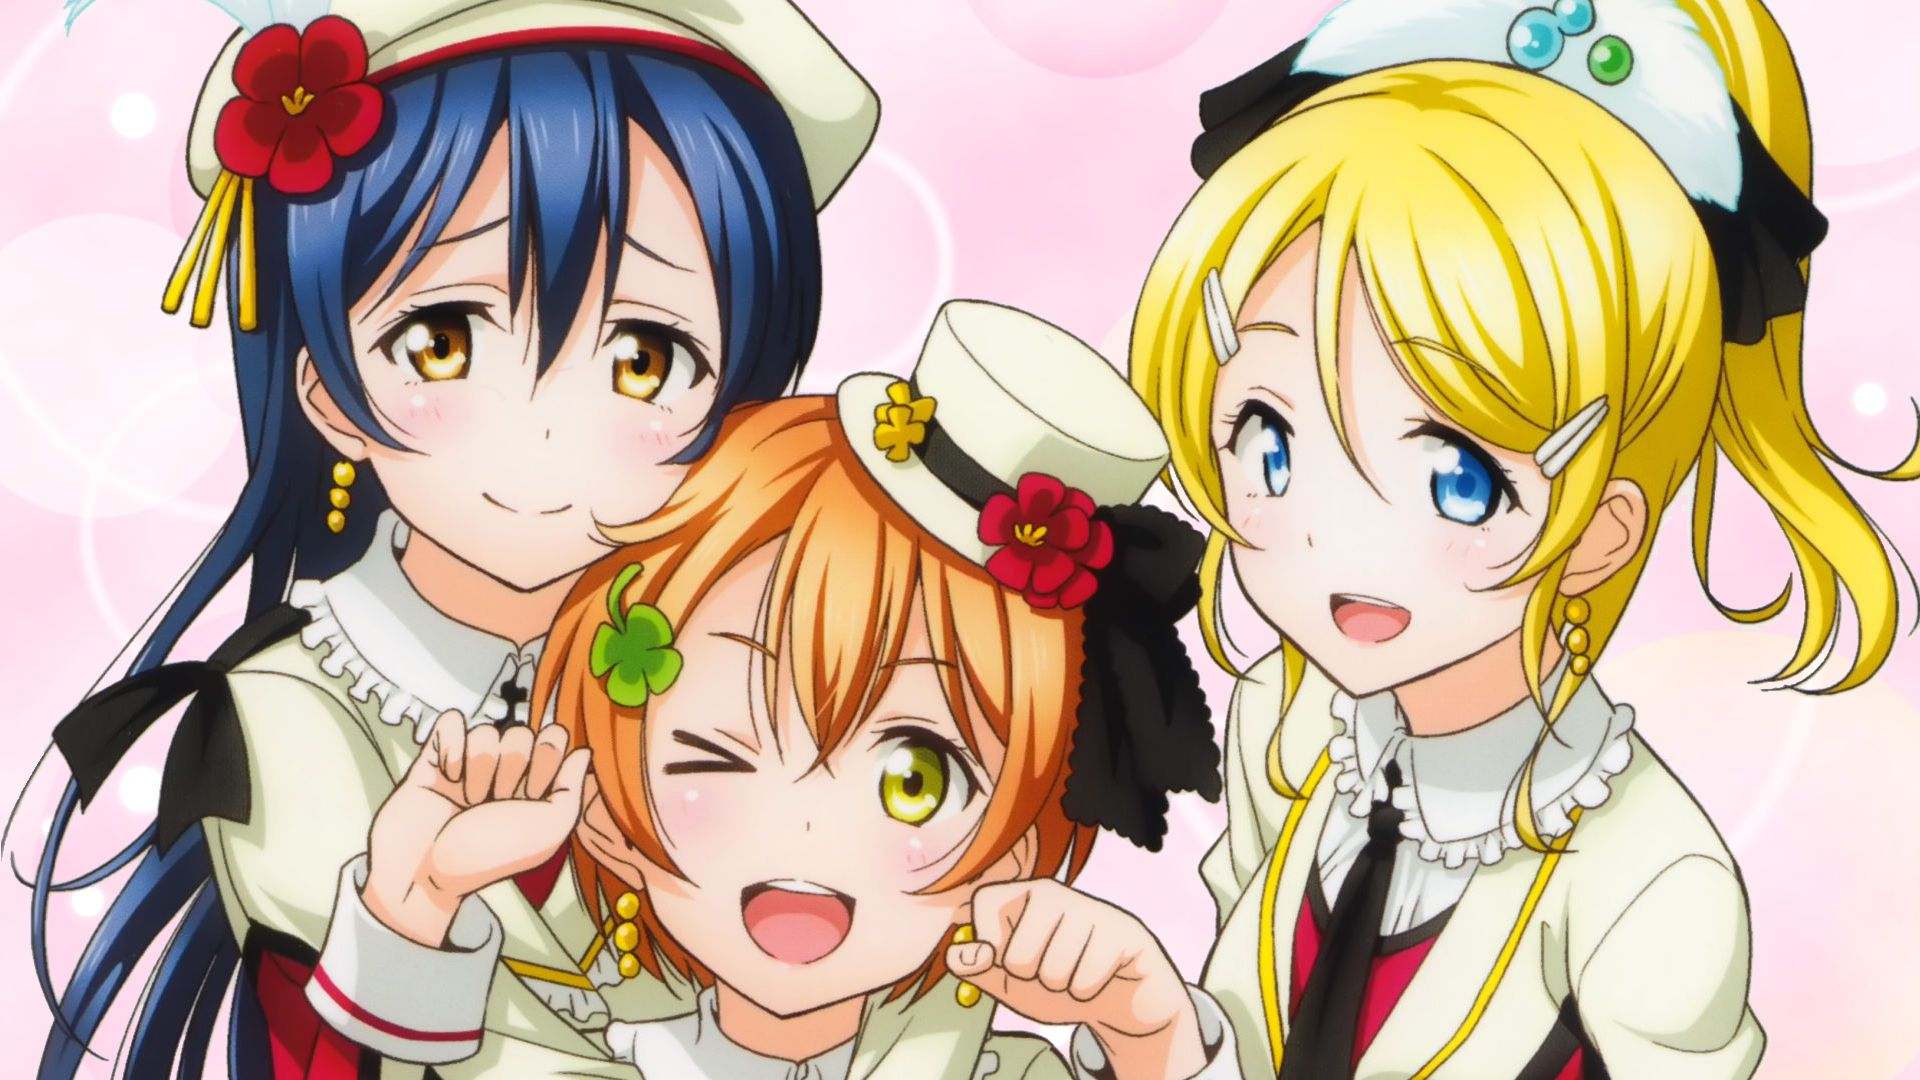 23257_lovelive_PC